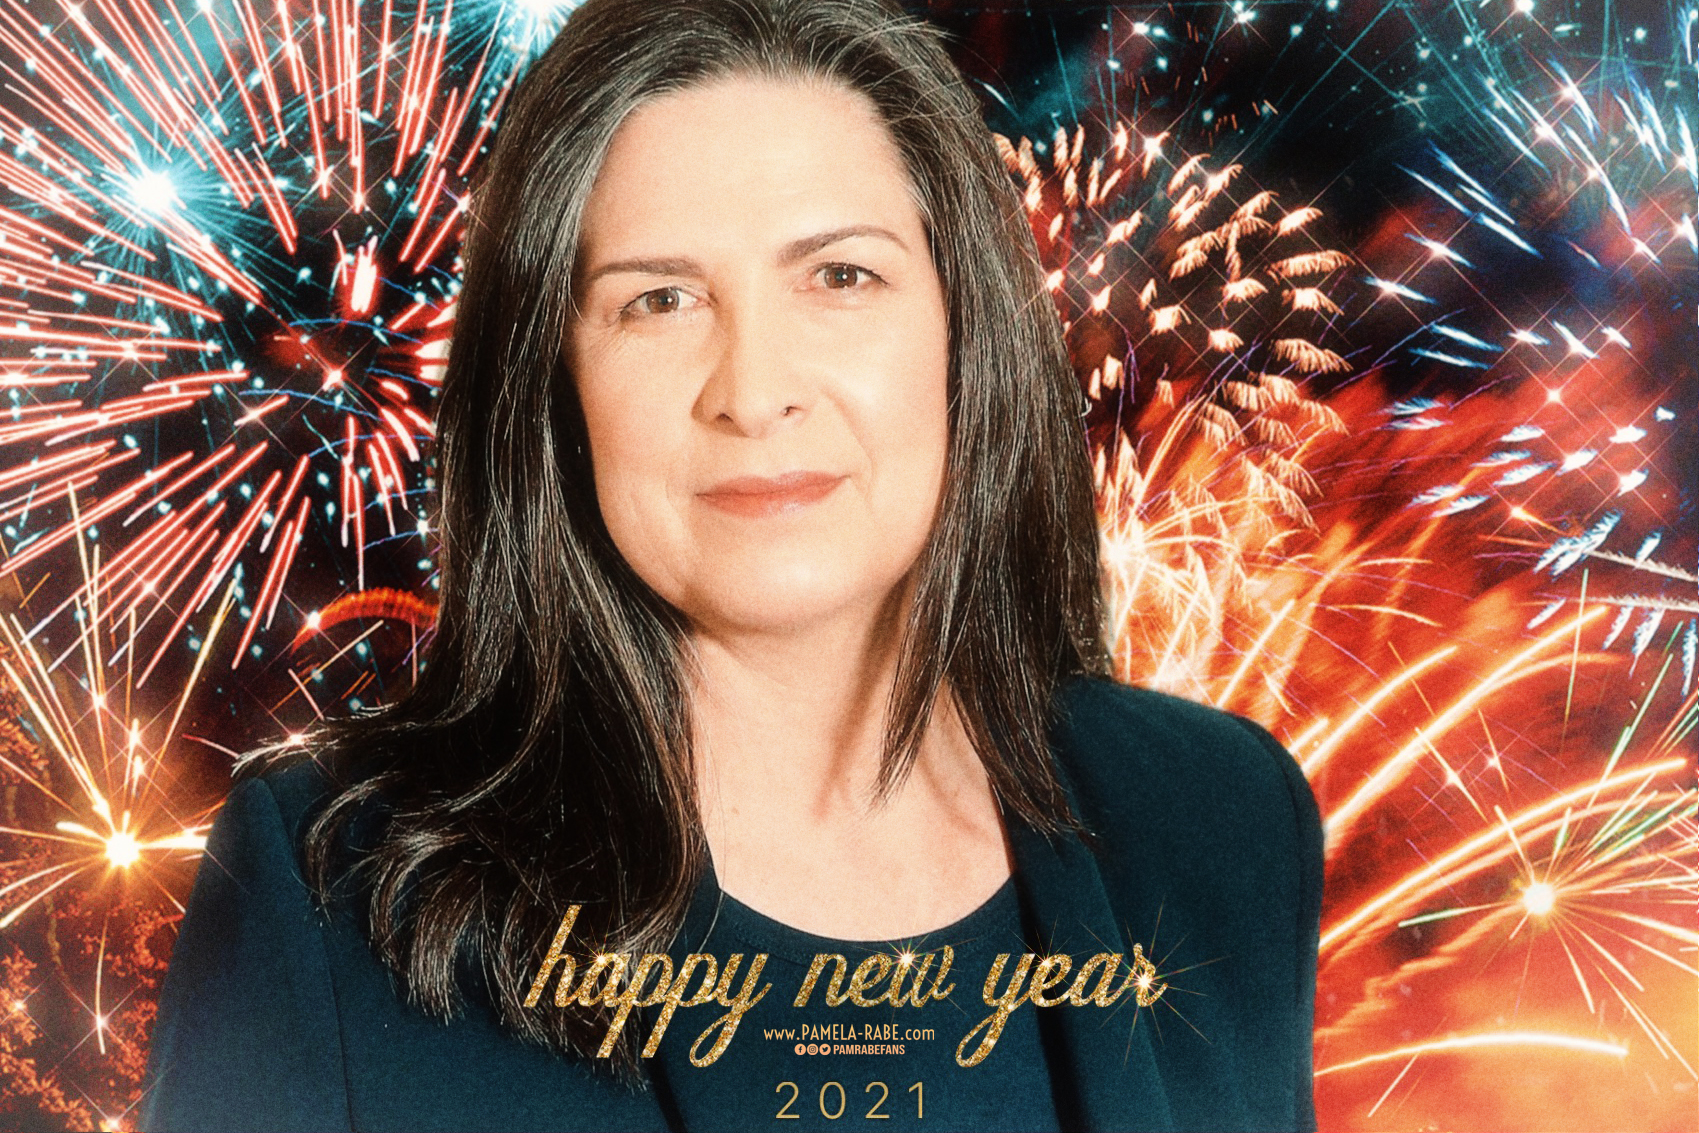 Happy New Year 2021 | www.Pamela-Rabe.com